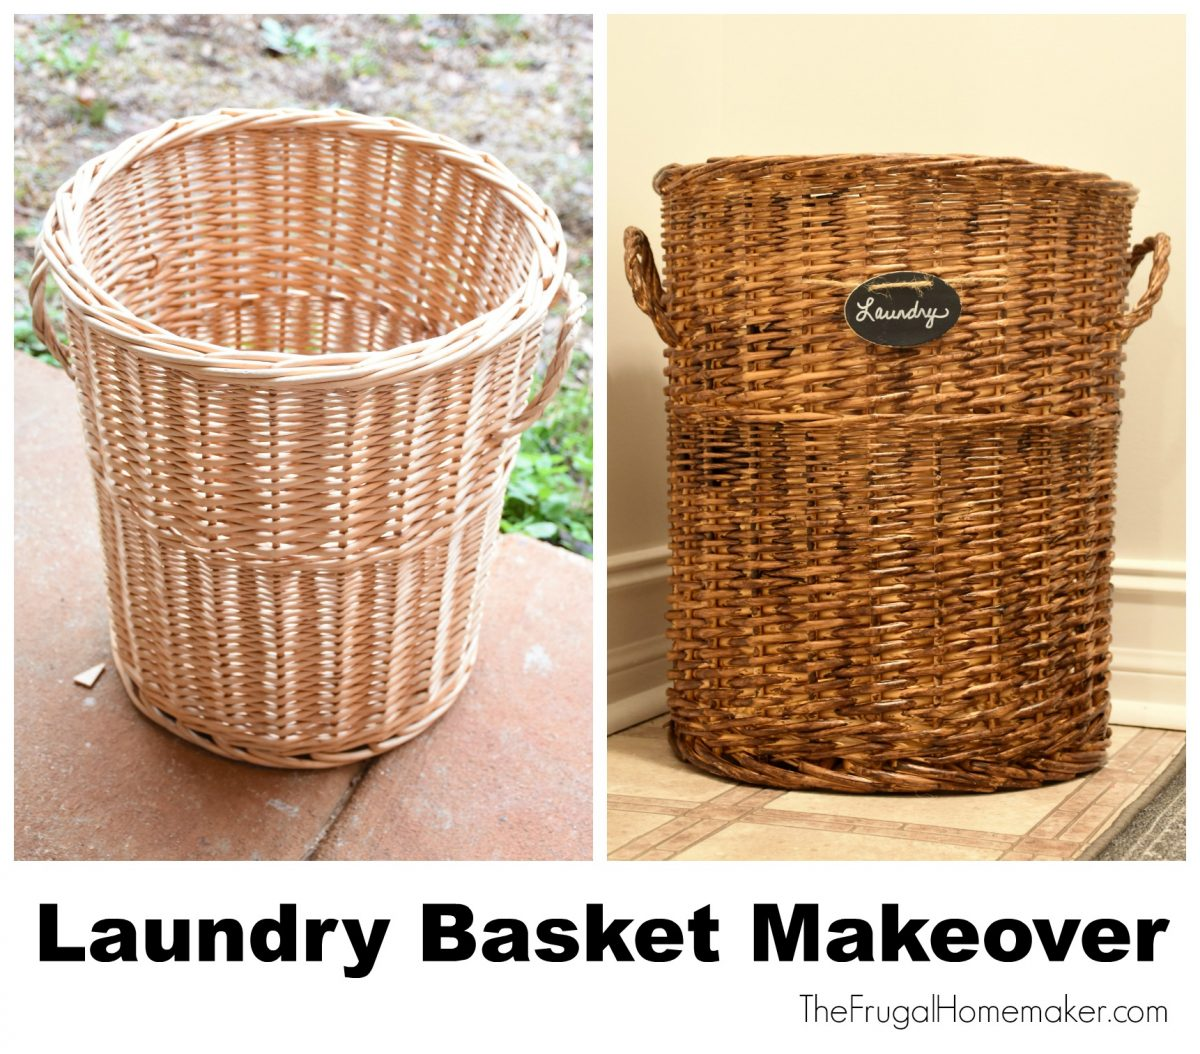 Laundry room basket makeover ($100 room challenge)